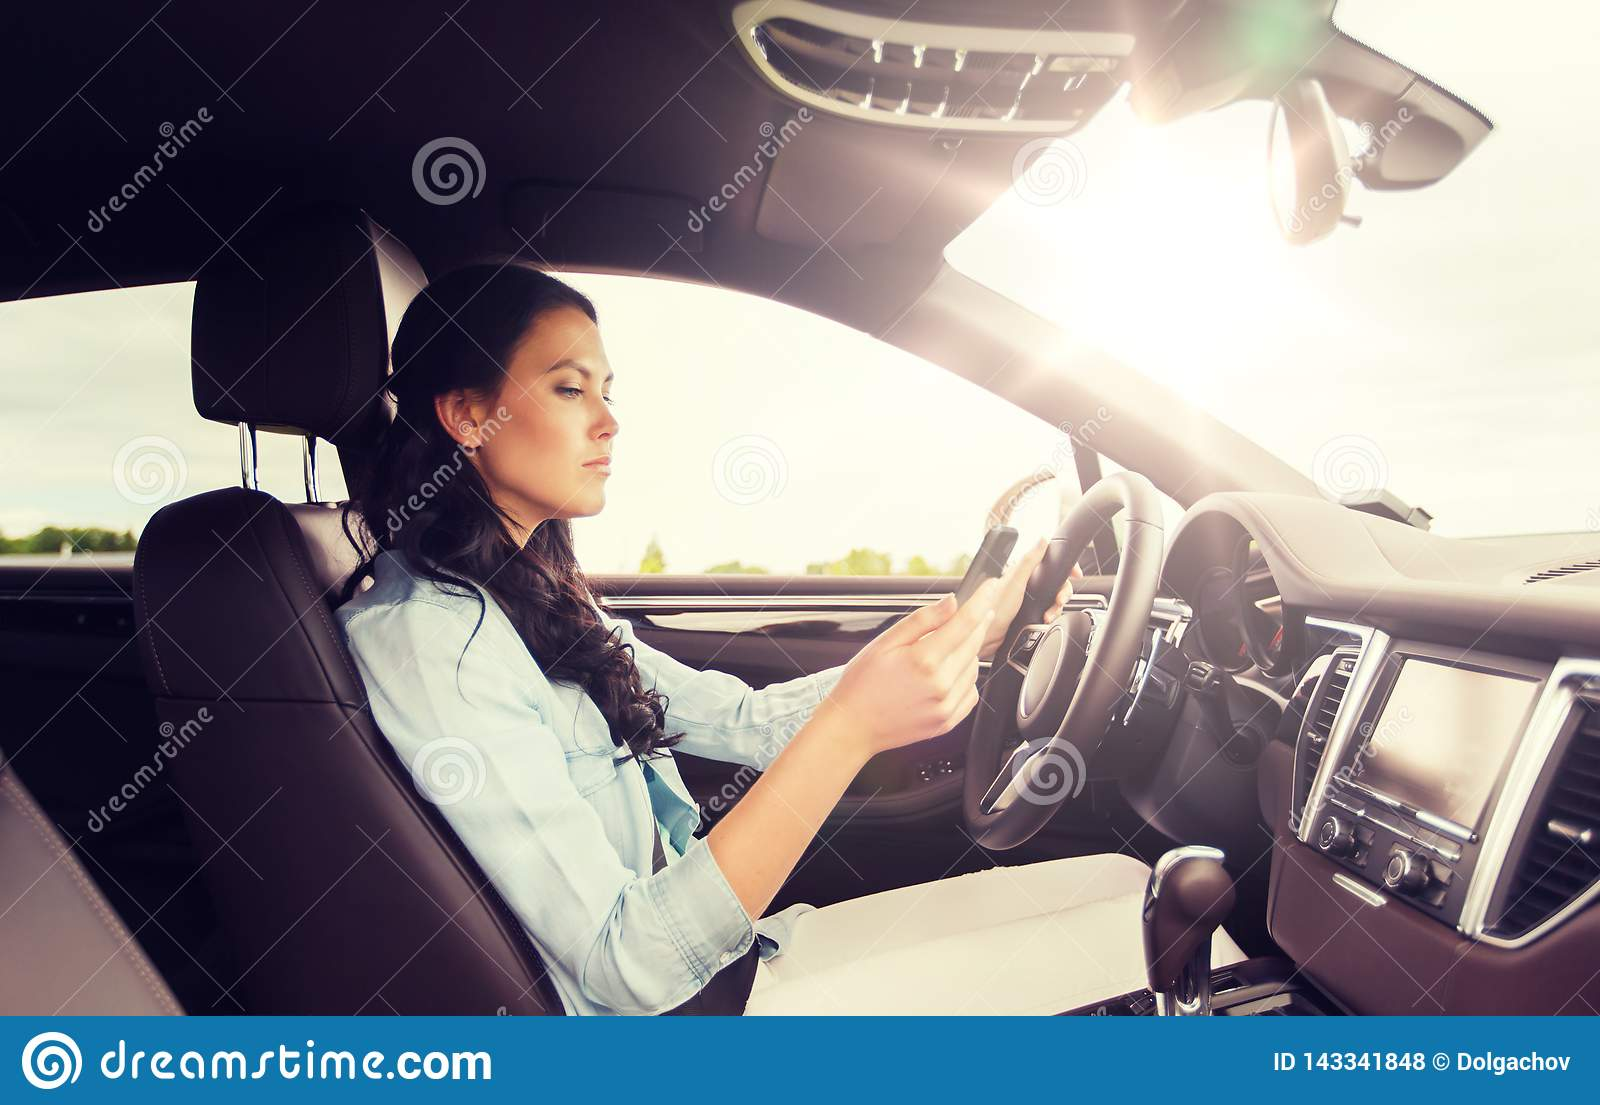 Woman driving car with smarhphone